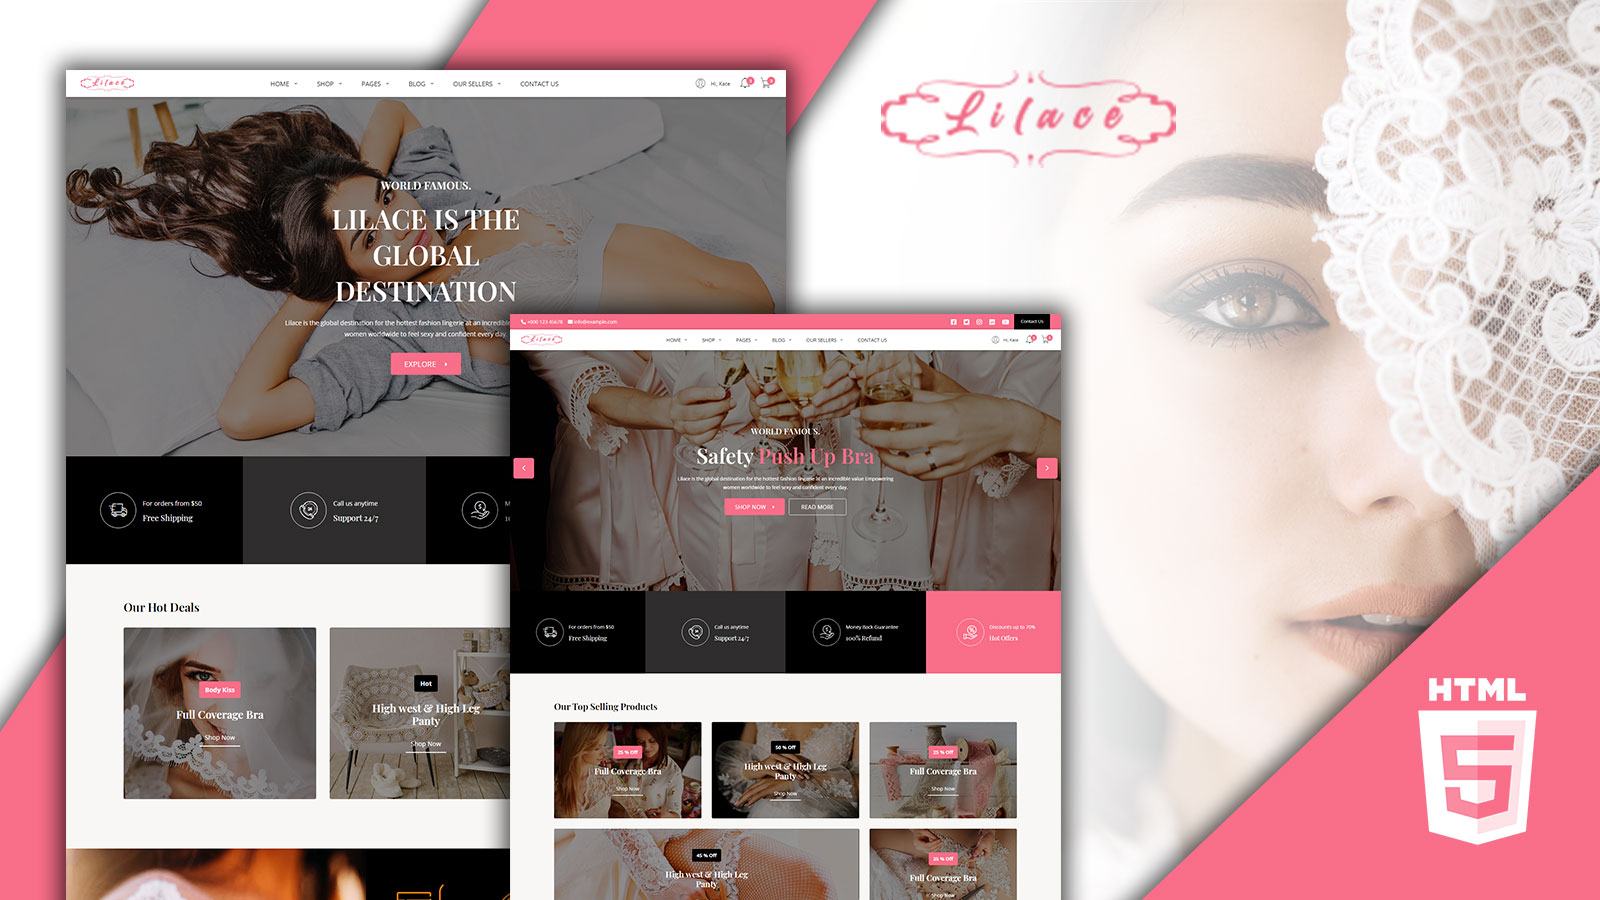 Lilace - Lingerie HTML Template